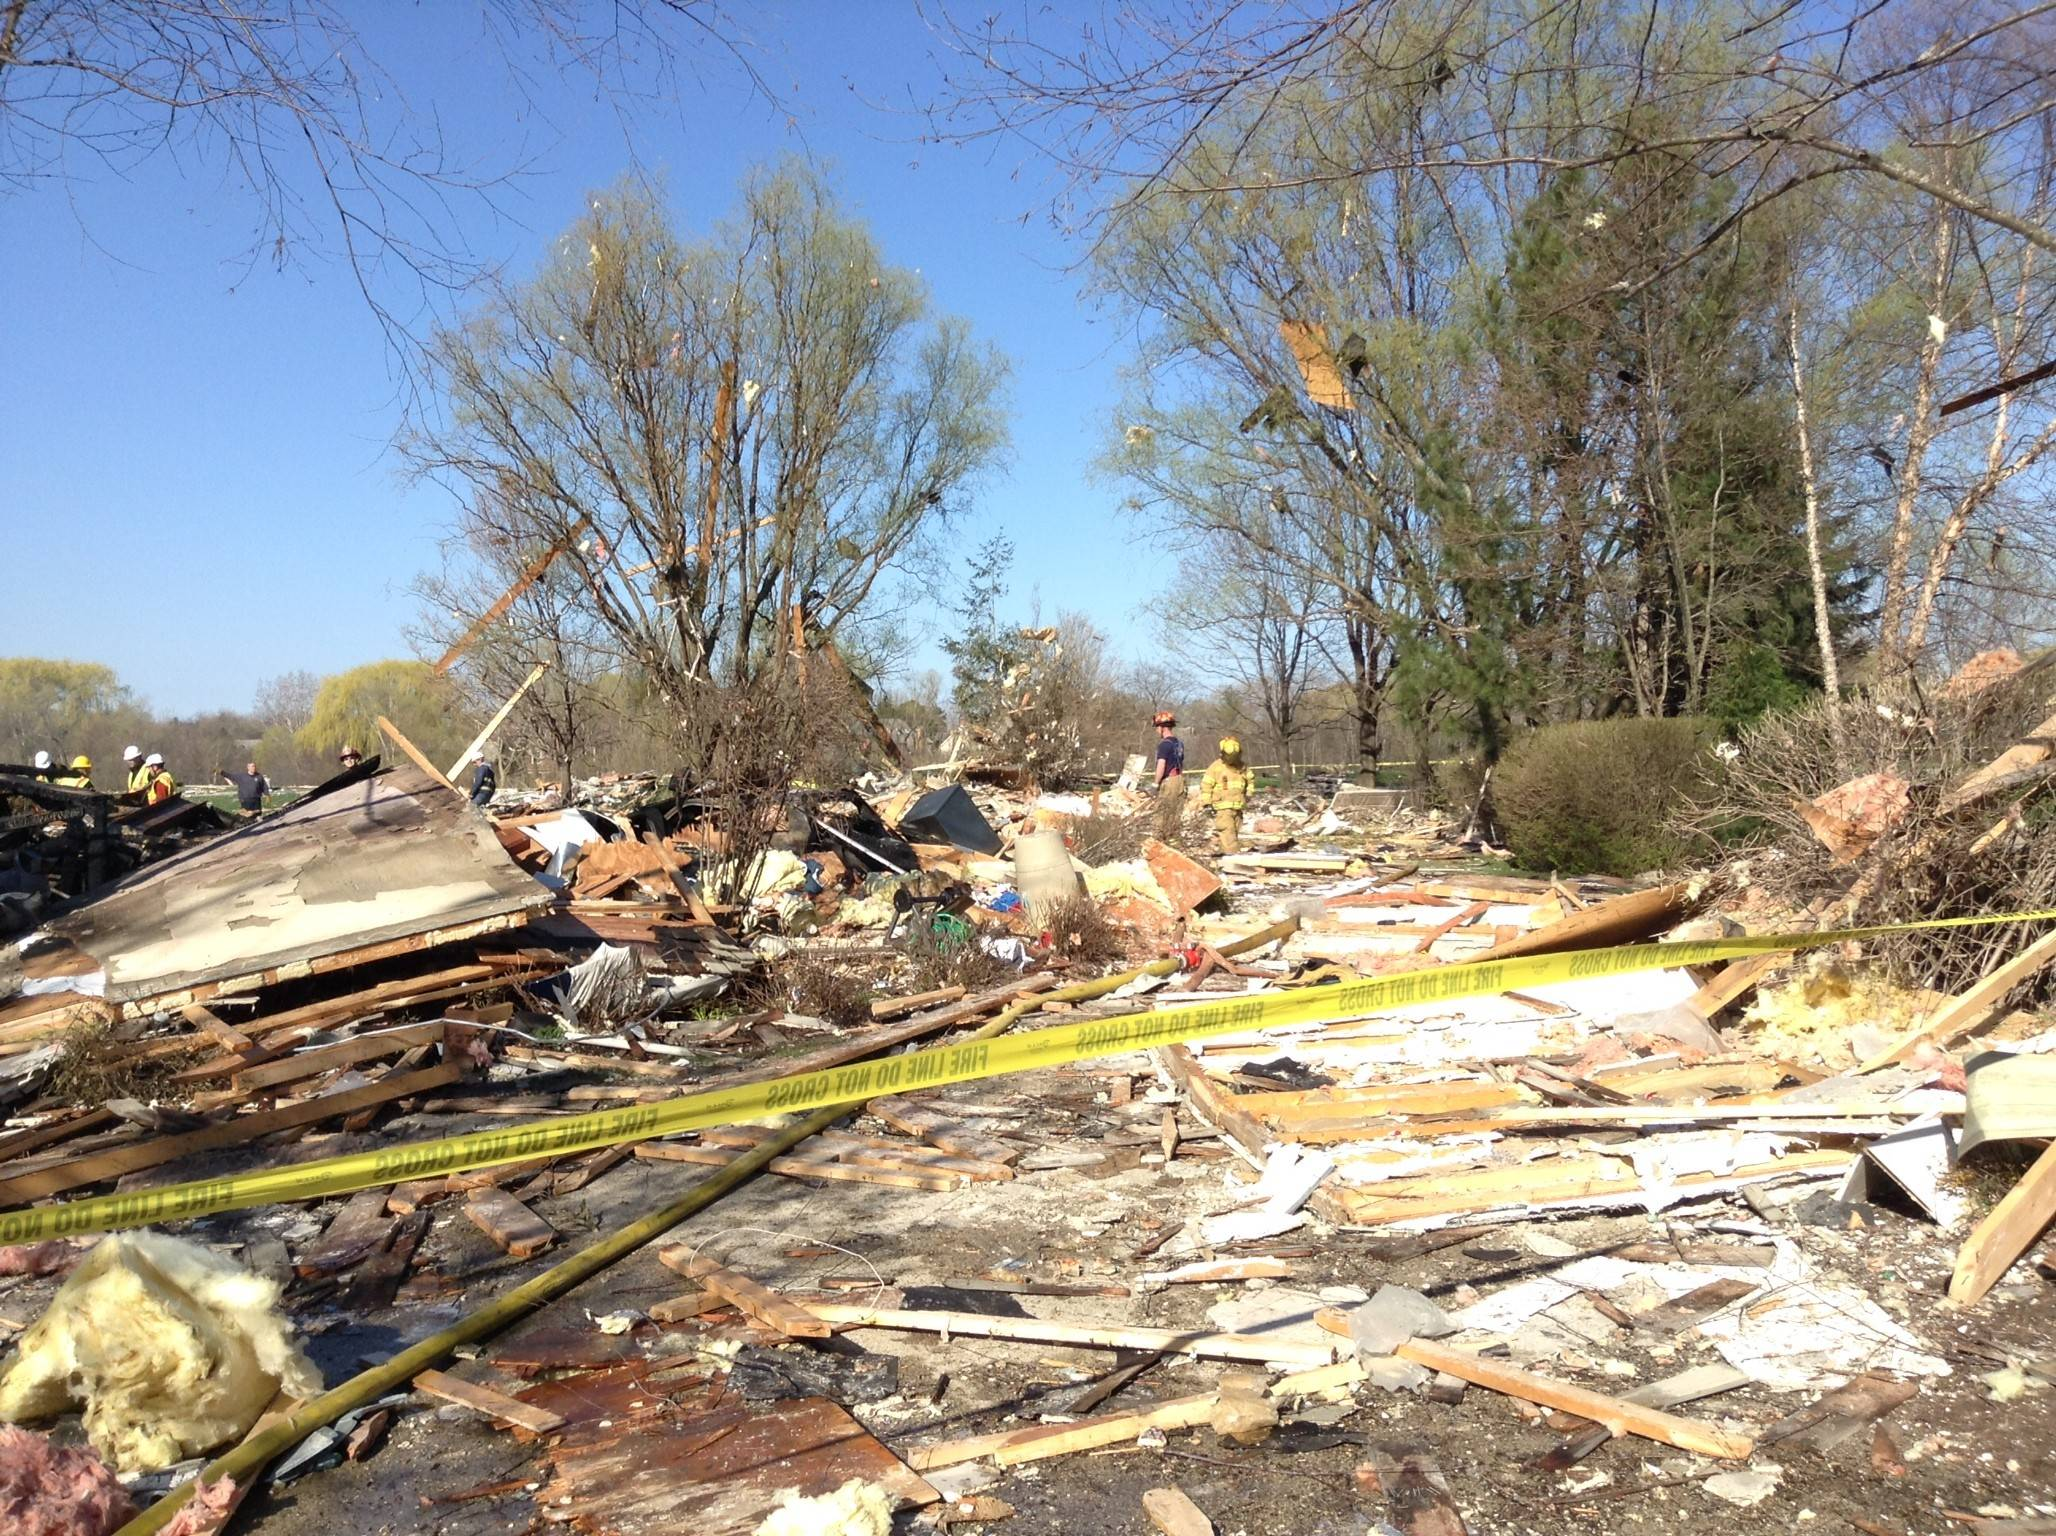 Crews were busy Saturday with the aftermath of a Long Grove house explosion. This debris is all the remained of the house that exploded late Friday in the Royal Melbourne subdivision. Authorities said no one was seriously injured.